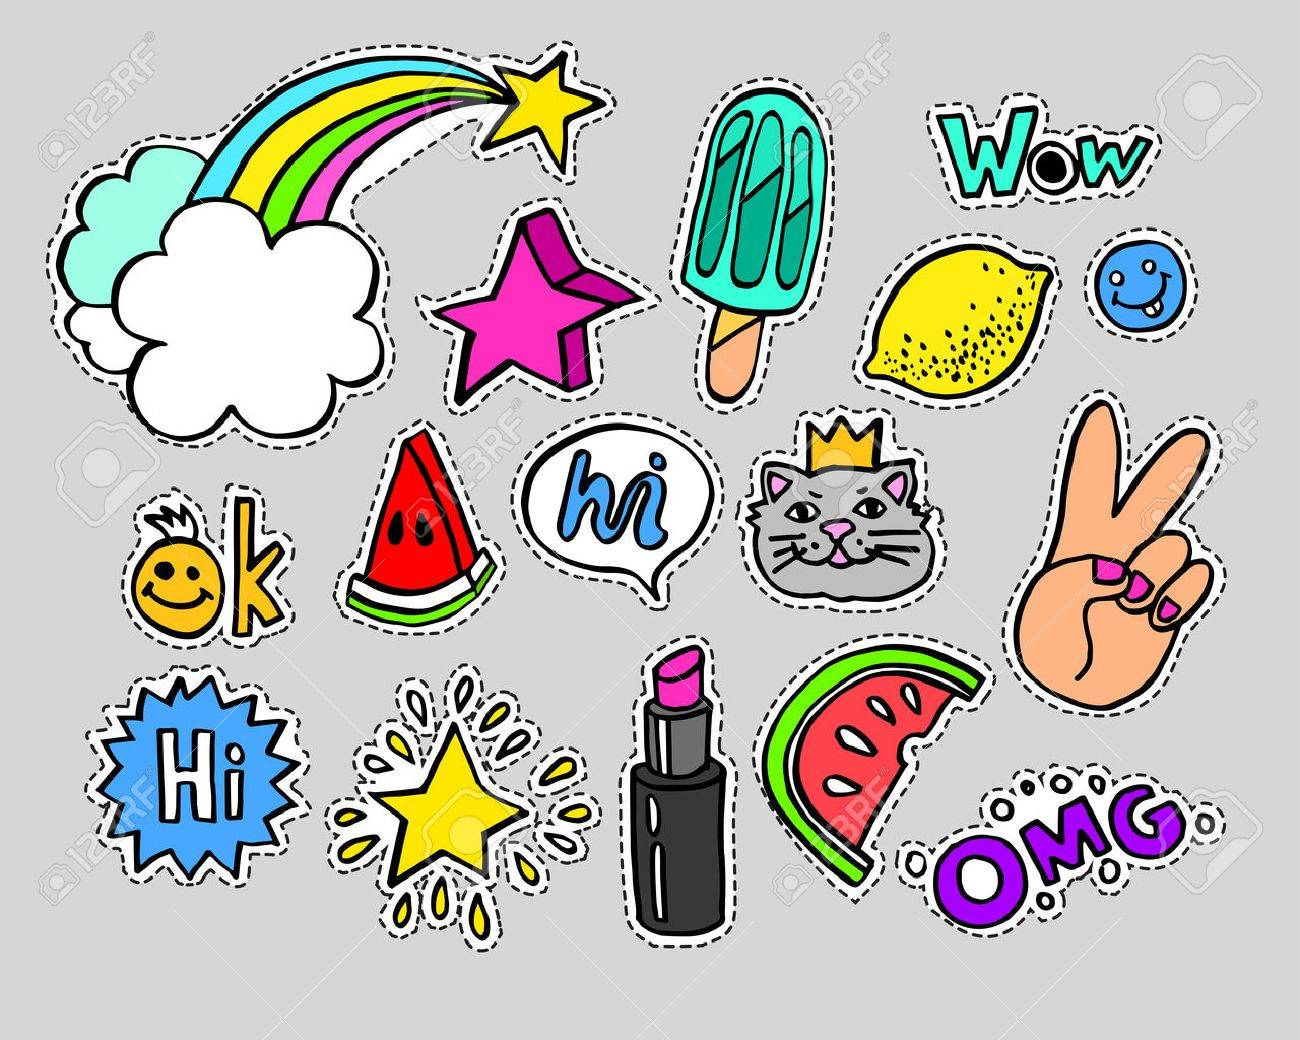 Fashion modern doodle cartoon patch badges or stikers with speach bubbles, stars, heart, lips and other elements. Set of cartoon pins in 80s 90s pop art. Vector Illustration. - 63336950